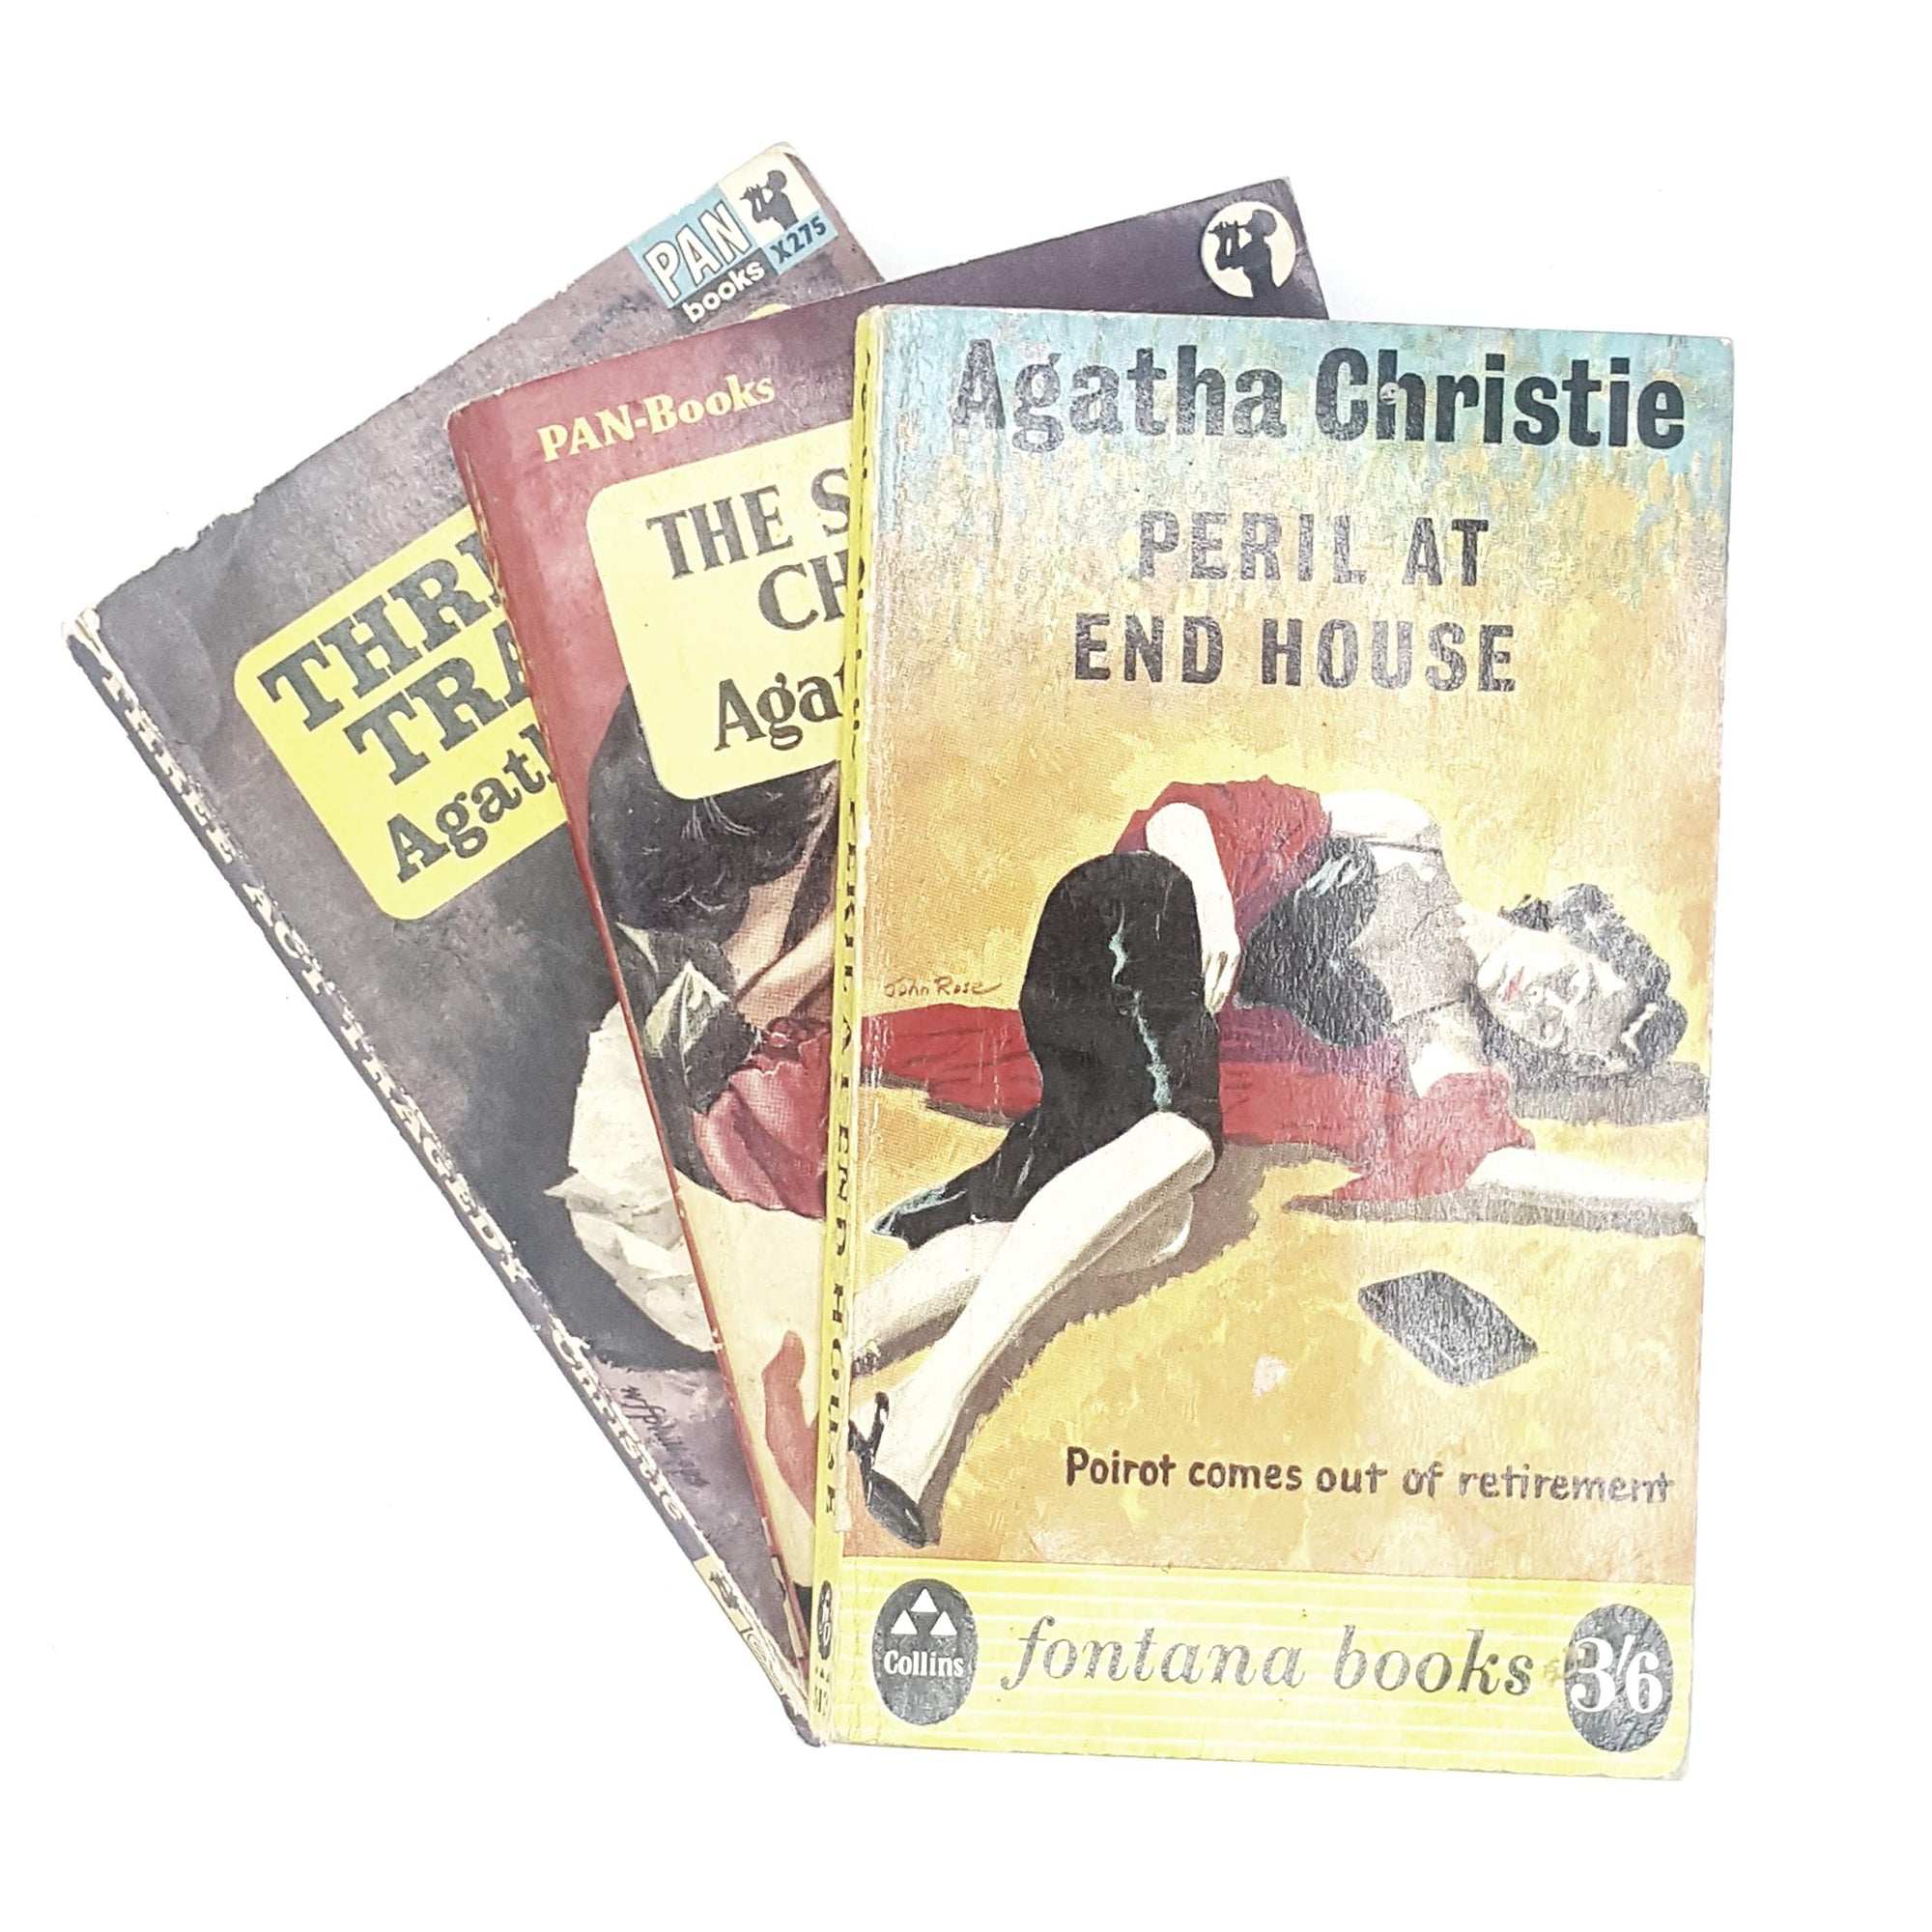 Collection Agatha Christie's Poirot 1956 - 1964